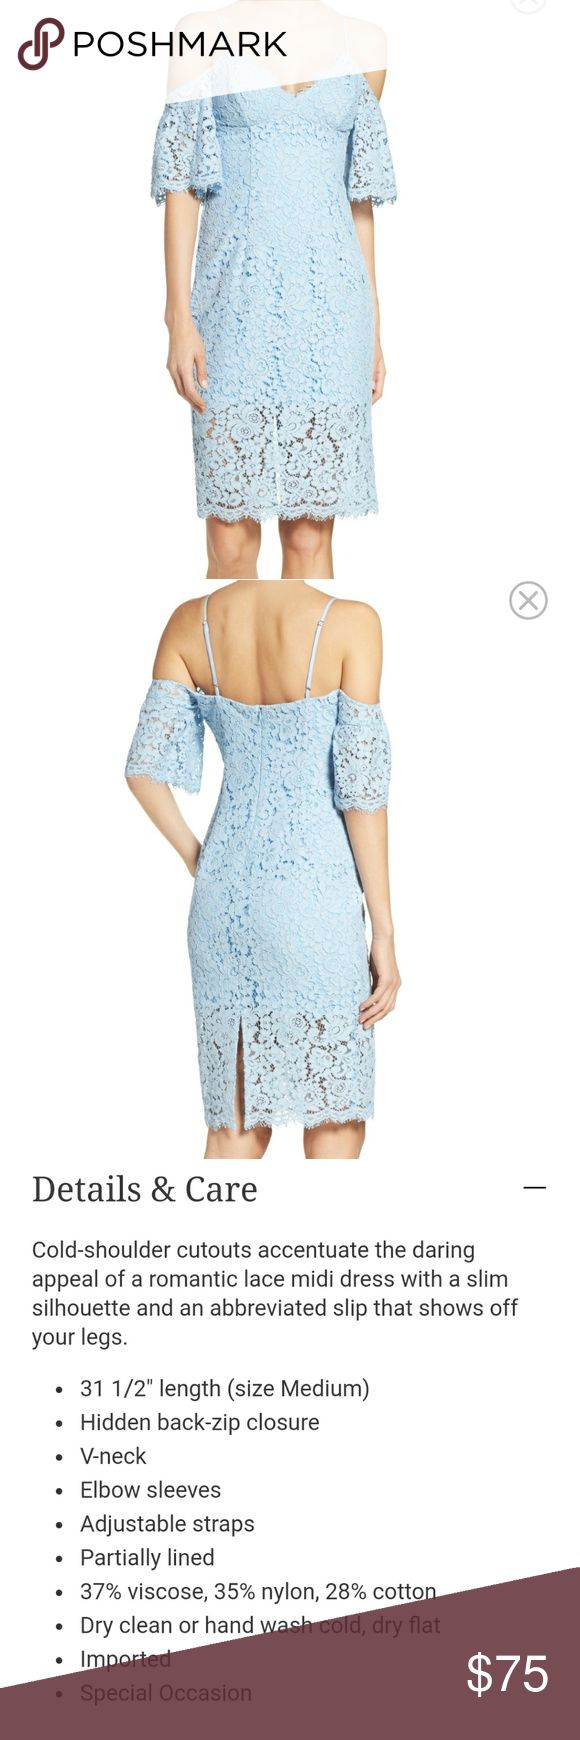 Sale: Bardot Karlie cold shoulder lace midi dress See 3rd image for dress details. Only worm to a wedding 1x. Looks new. Perfect condition. Gorgeous and comfy dress. True to size I think. Light ice blue and size medium. Bought at Nordstrom Bardot Dresses Midi